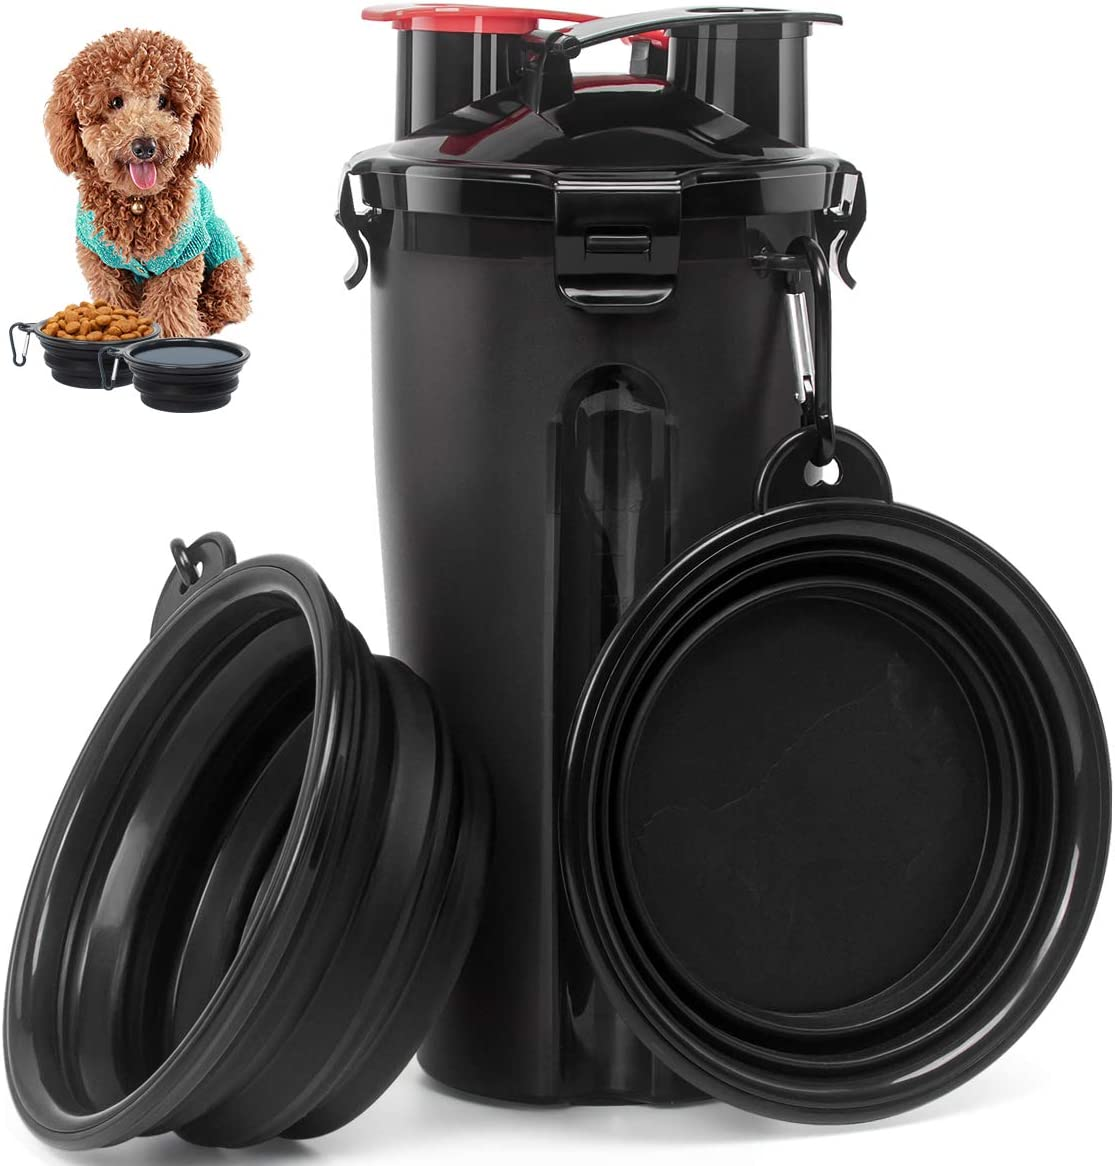 Esing Dog Water Bottles W/Bowls Pet Portable Drinking Bottle Puppy Travel Dispenser Doggie Kettle Kittens Feeding Cup W/Food Container